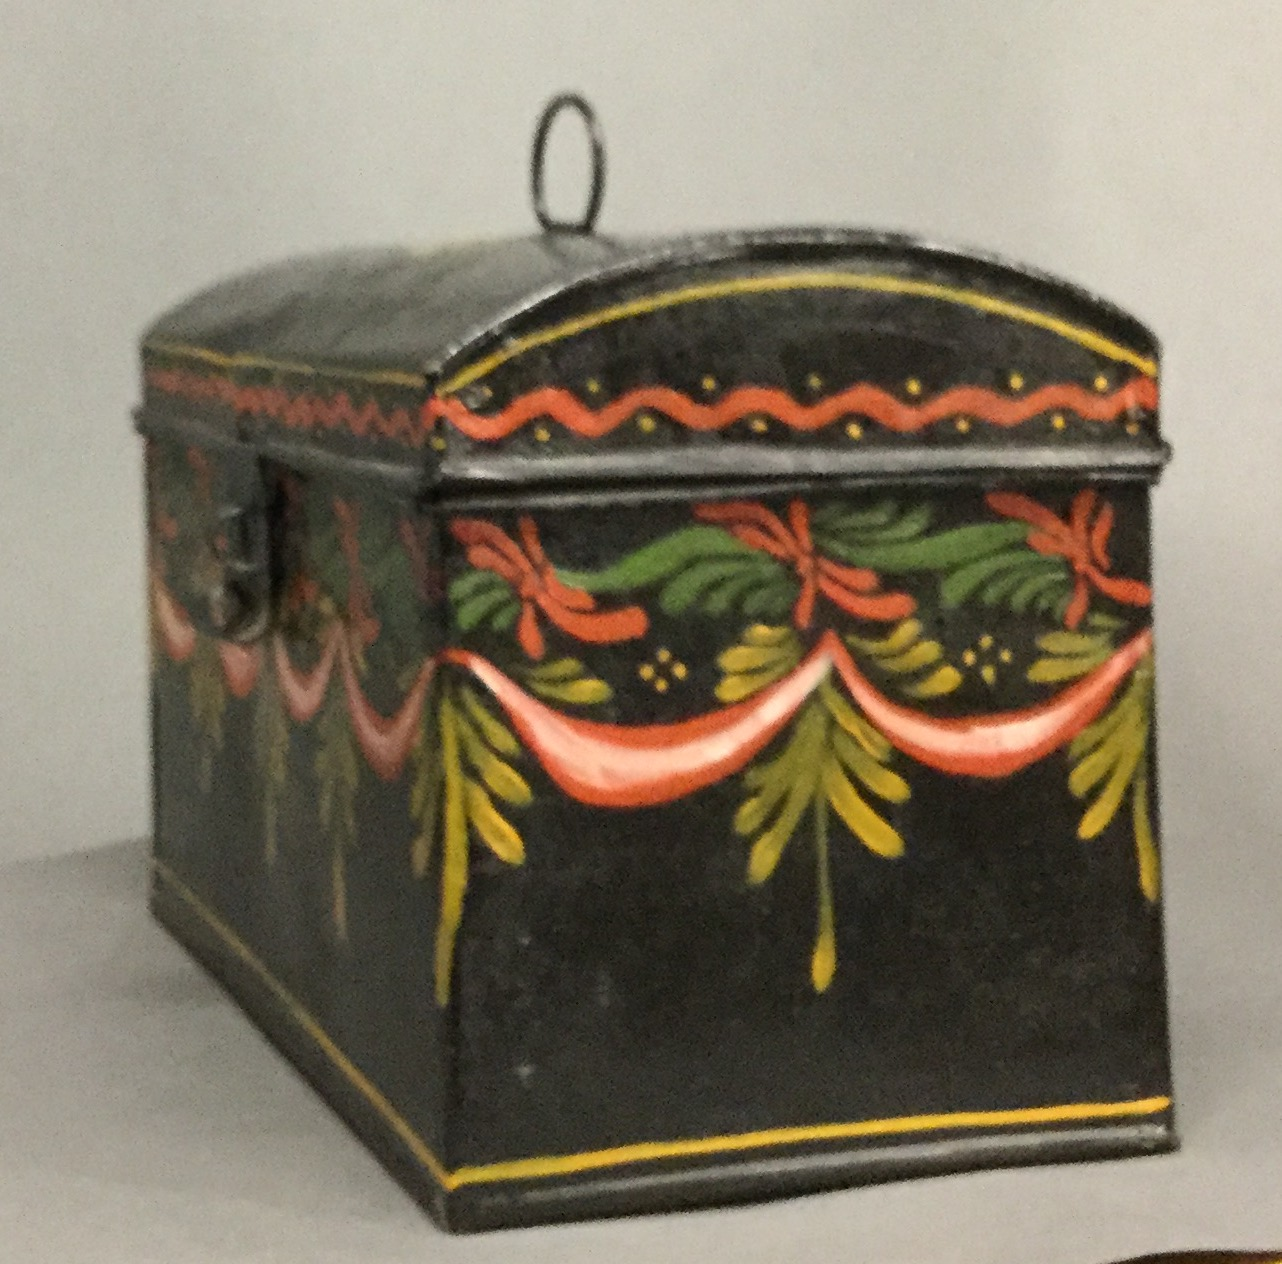 Antique-Tole-Painted-Document-Box_63324F.jpg